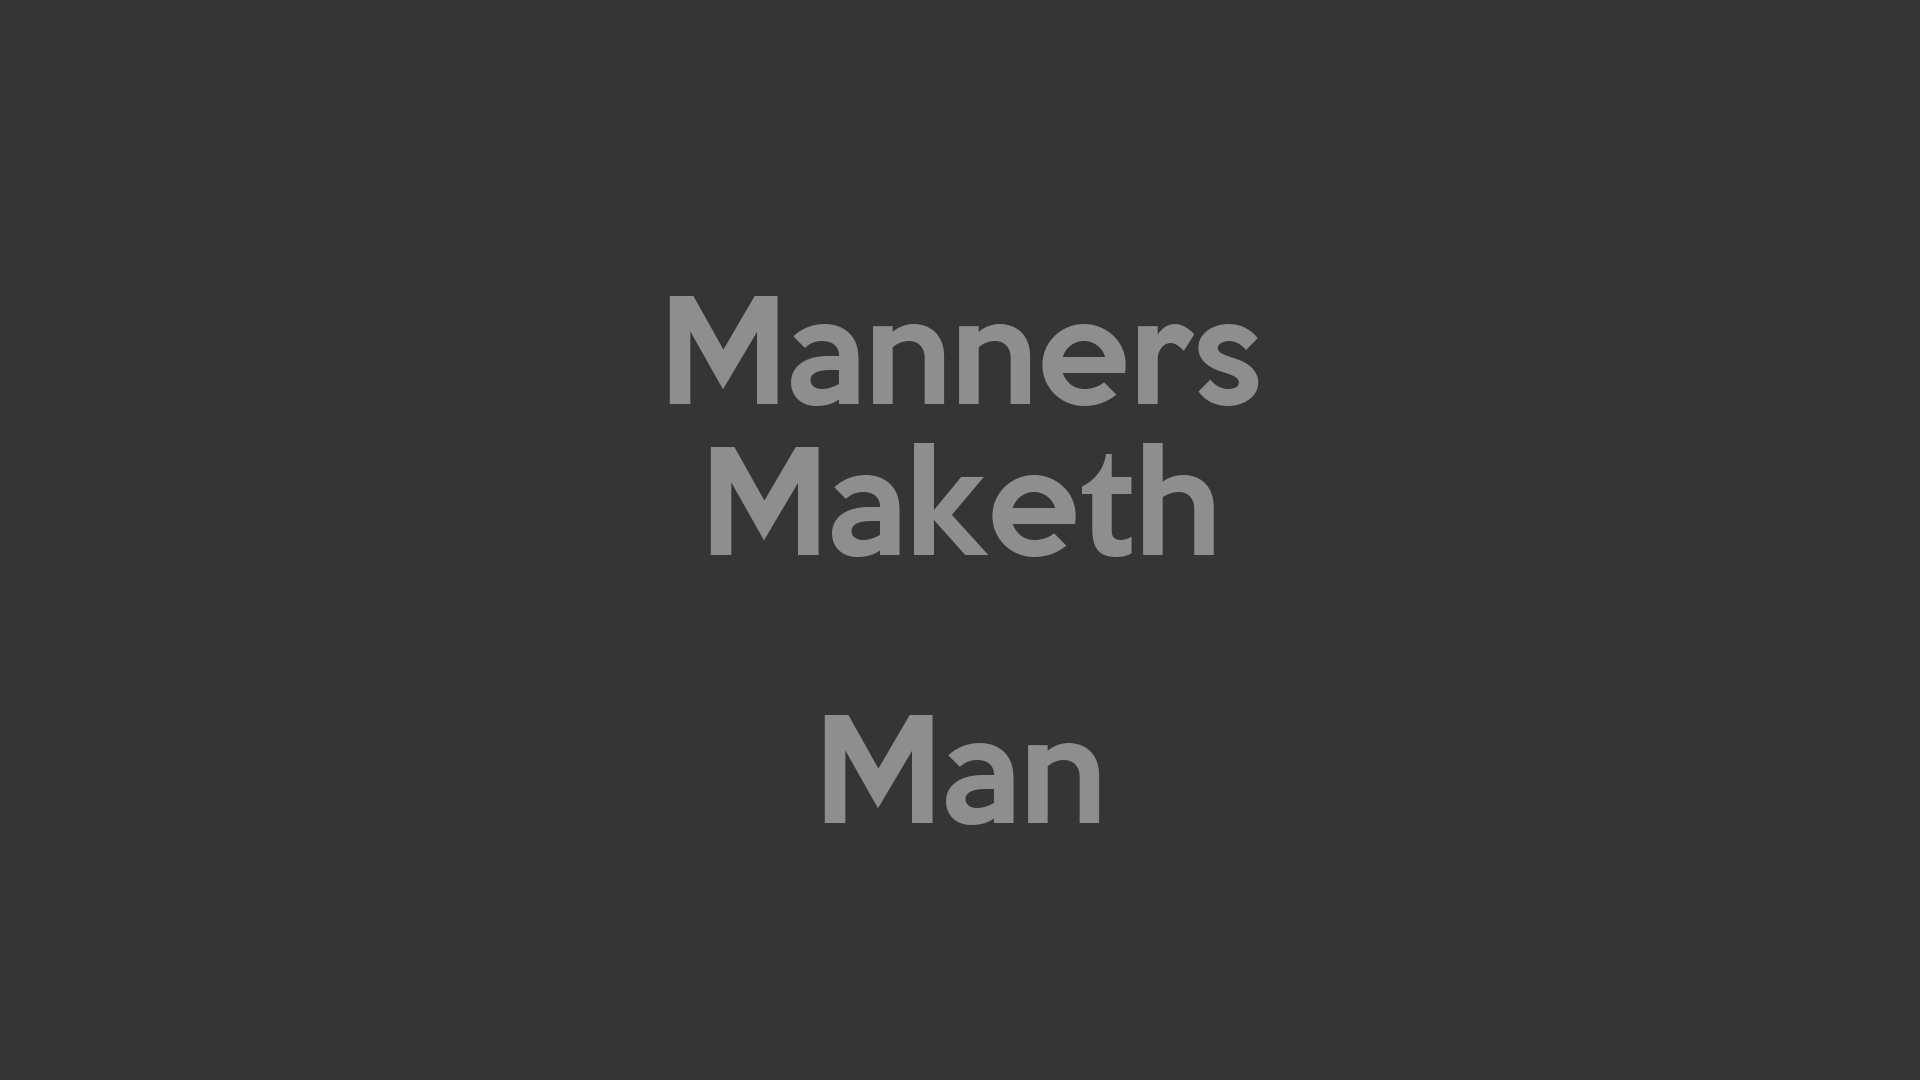 essay on manners maketh a man Manners make the man is a very commonly heard saying in every culture found  in world over manners form the basis for every person's name.